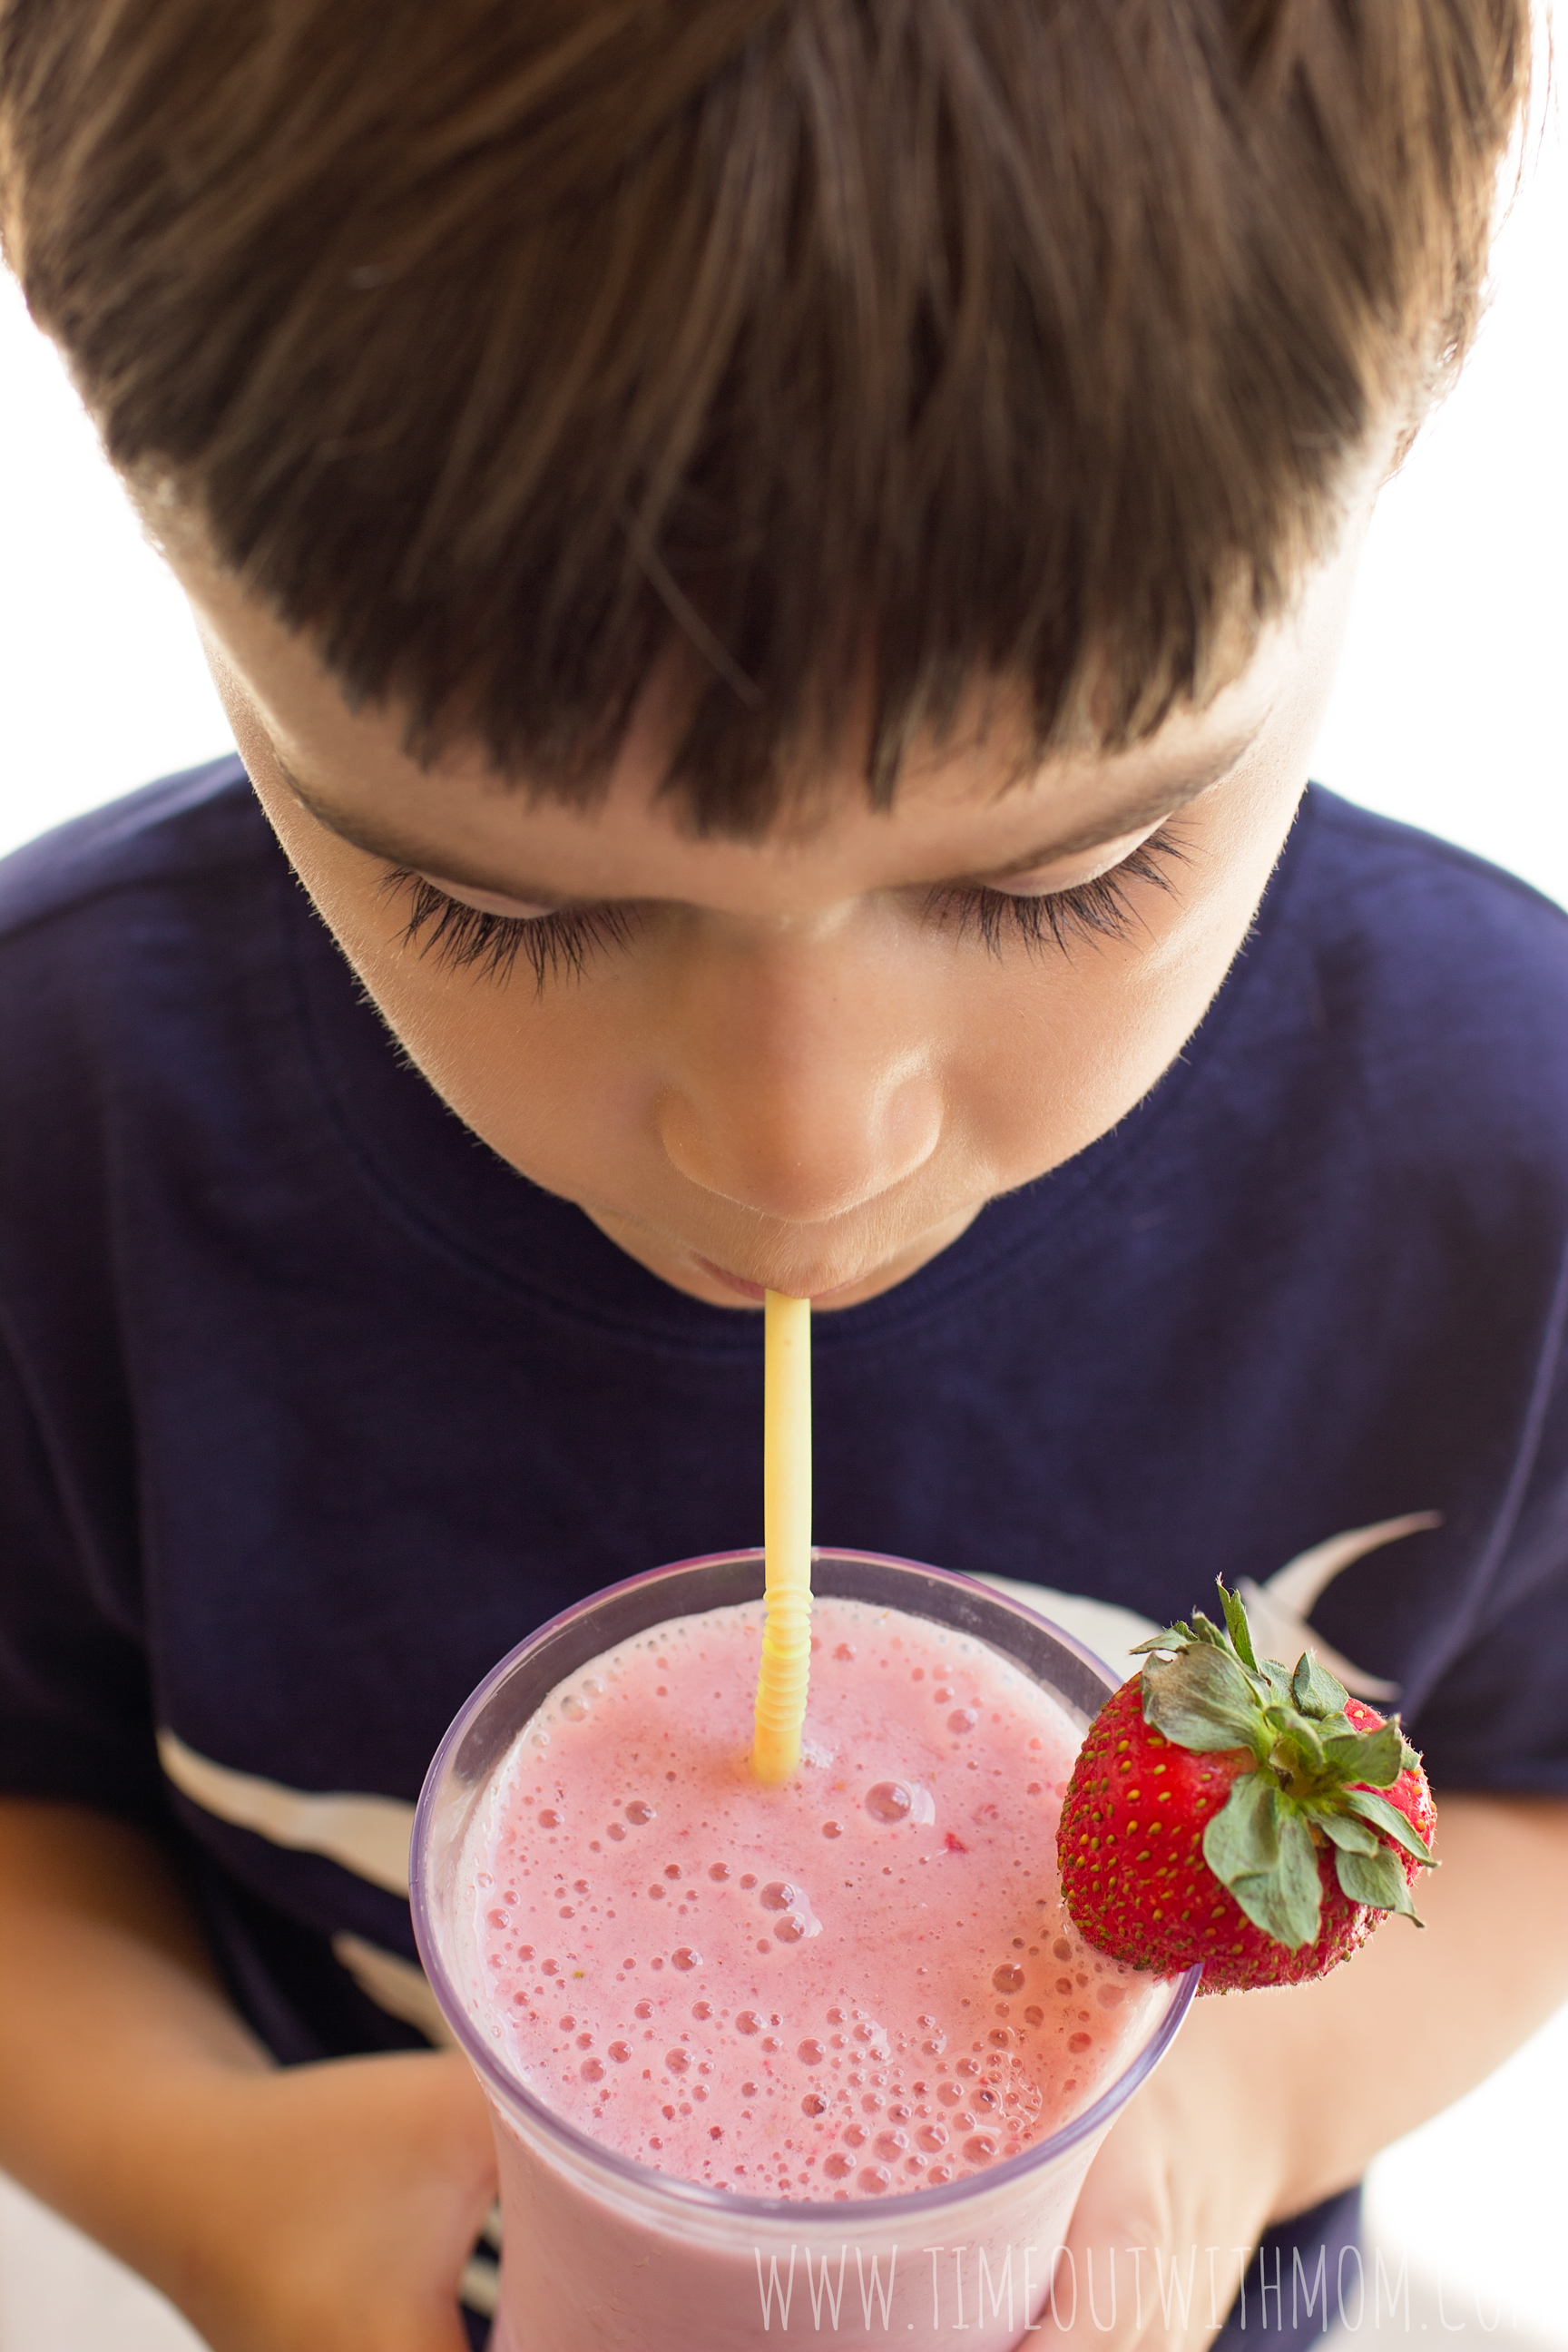 Strawberry Banana Milkshake for Picky Eaters